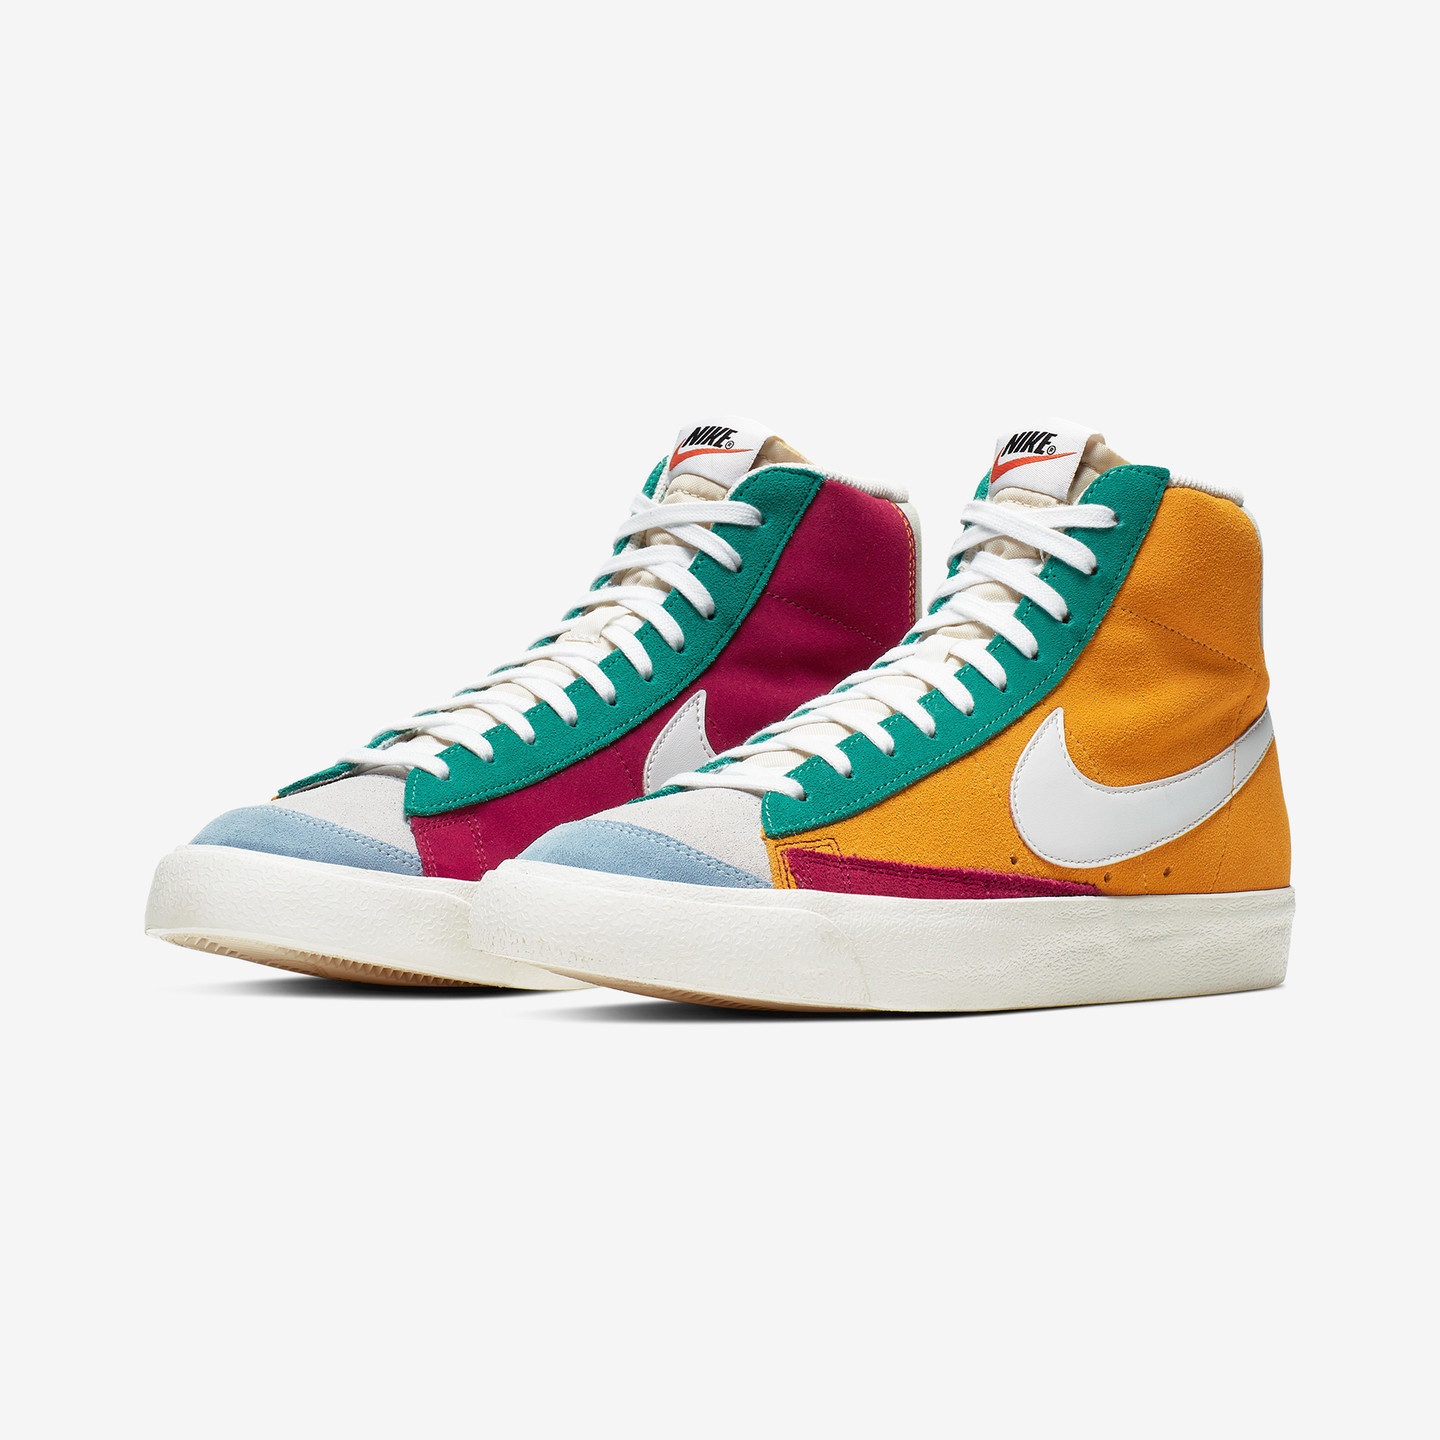 Nike Blazer Mid ´77 VNTG Suede Noble Red / Kinetic Green / Jade Aura CI1167-600